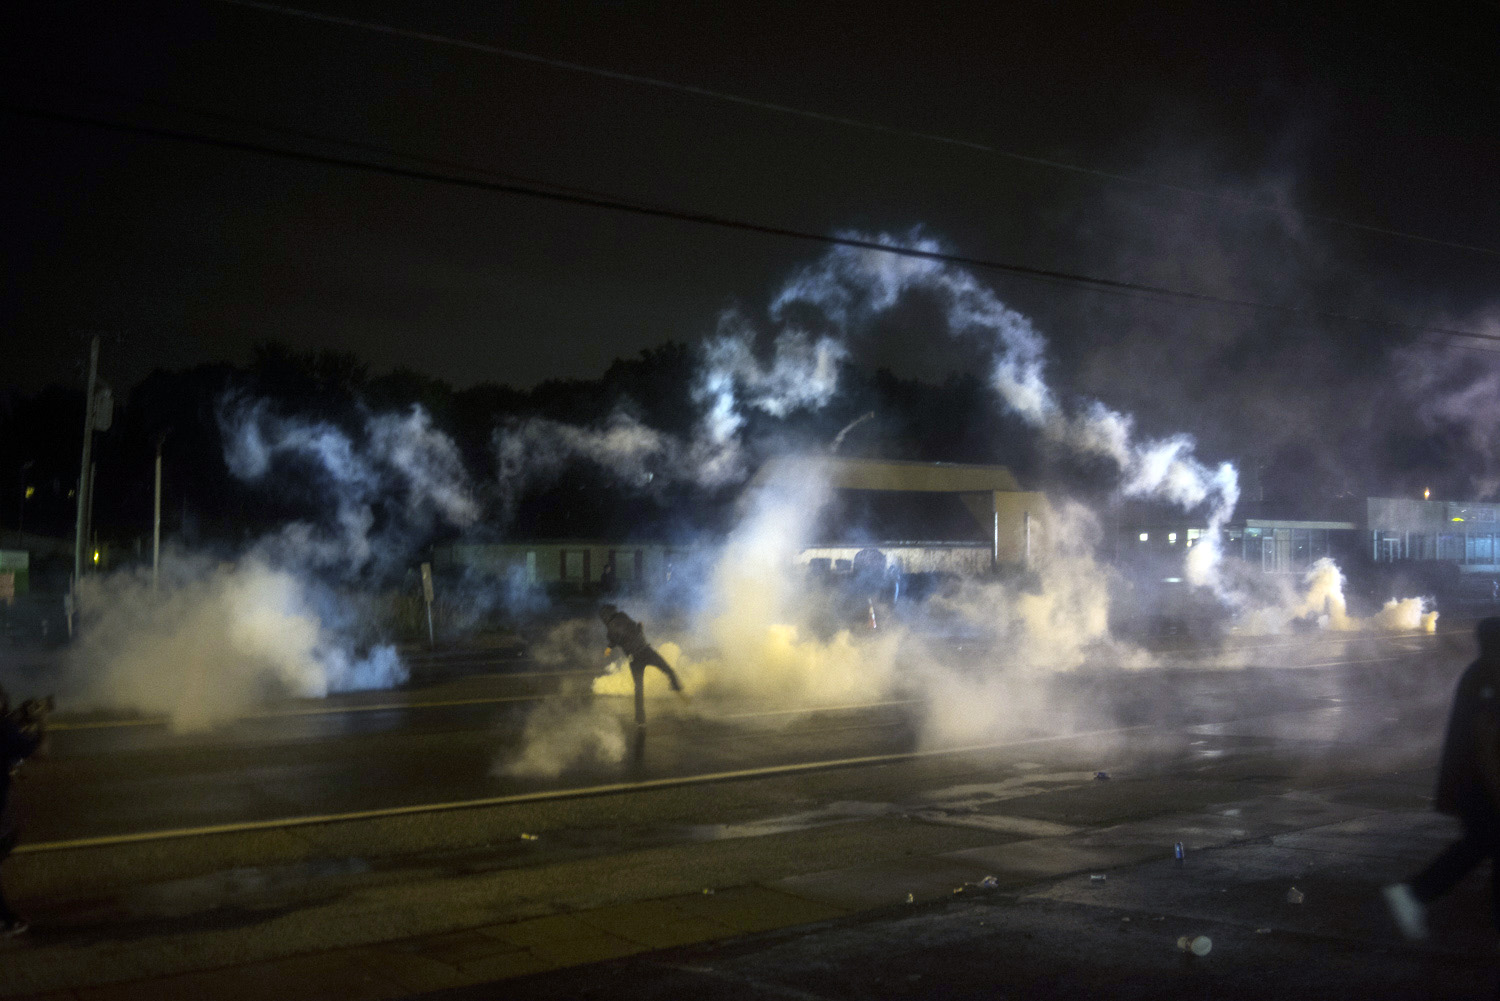 Protestors throw canisters                                    in Ferguson, Mo. on August 18, 2014.